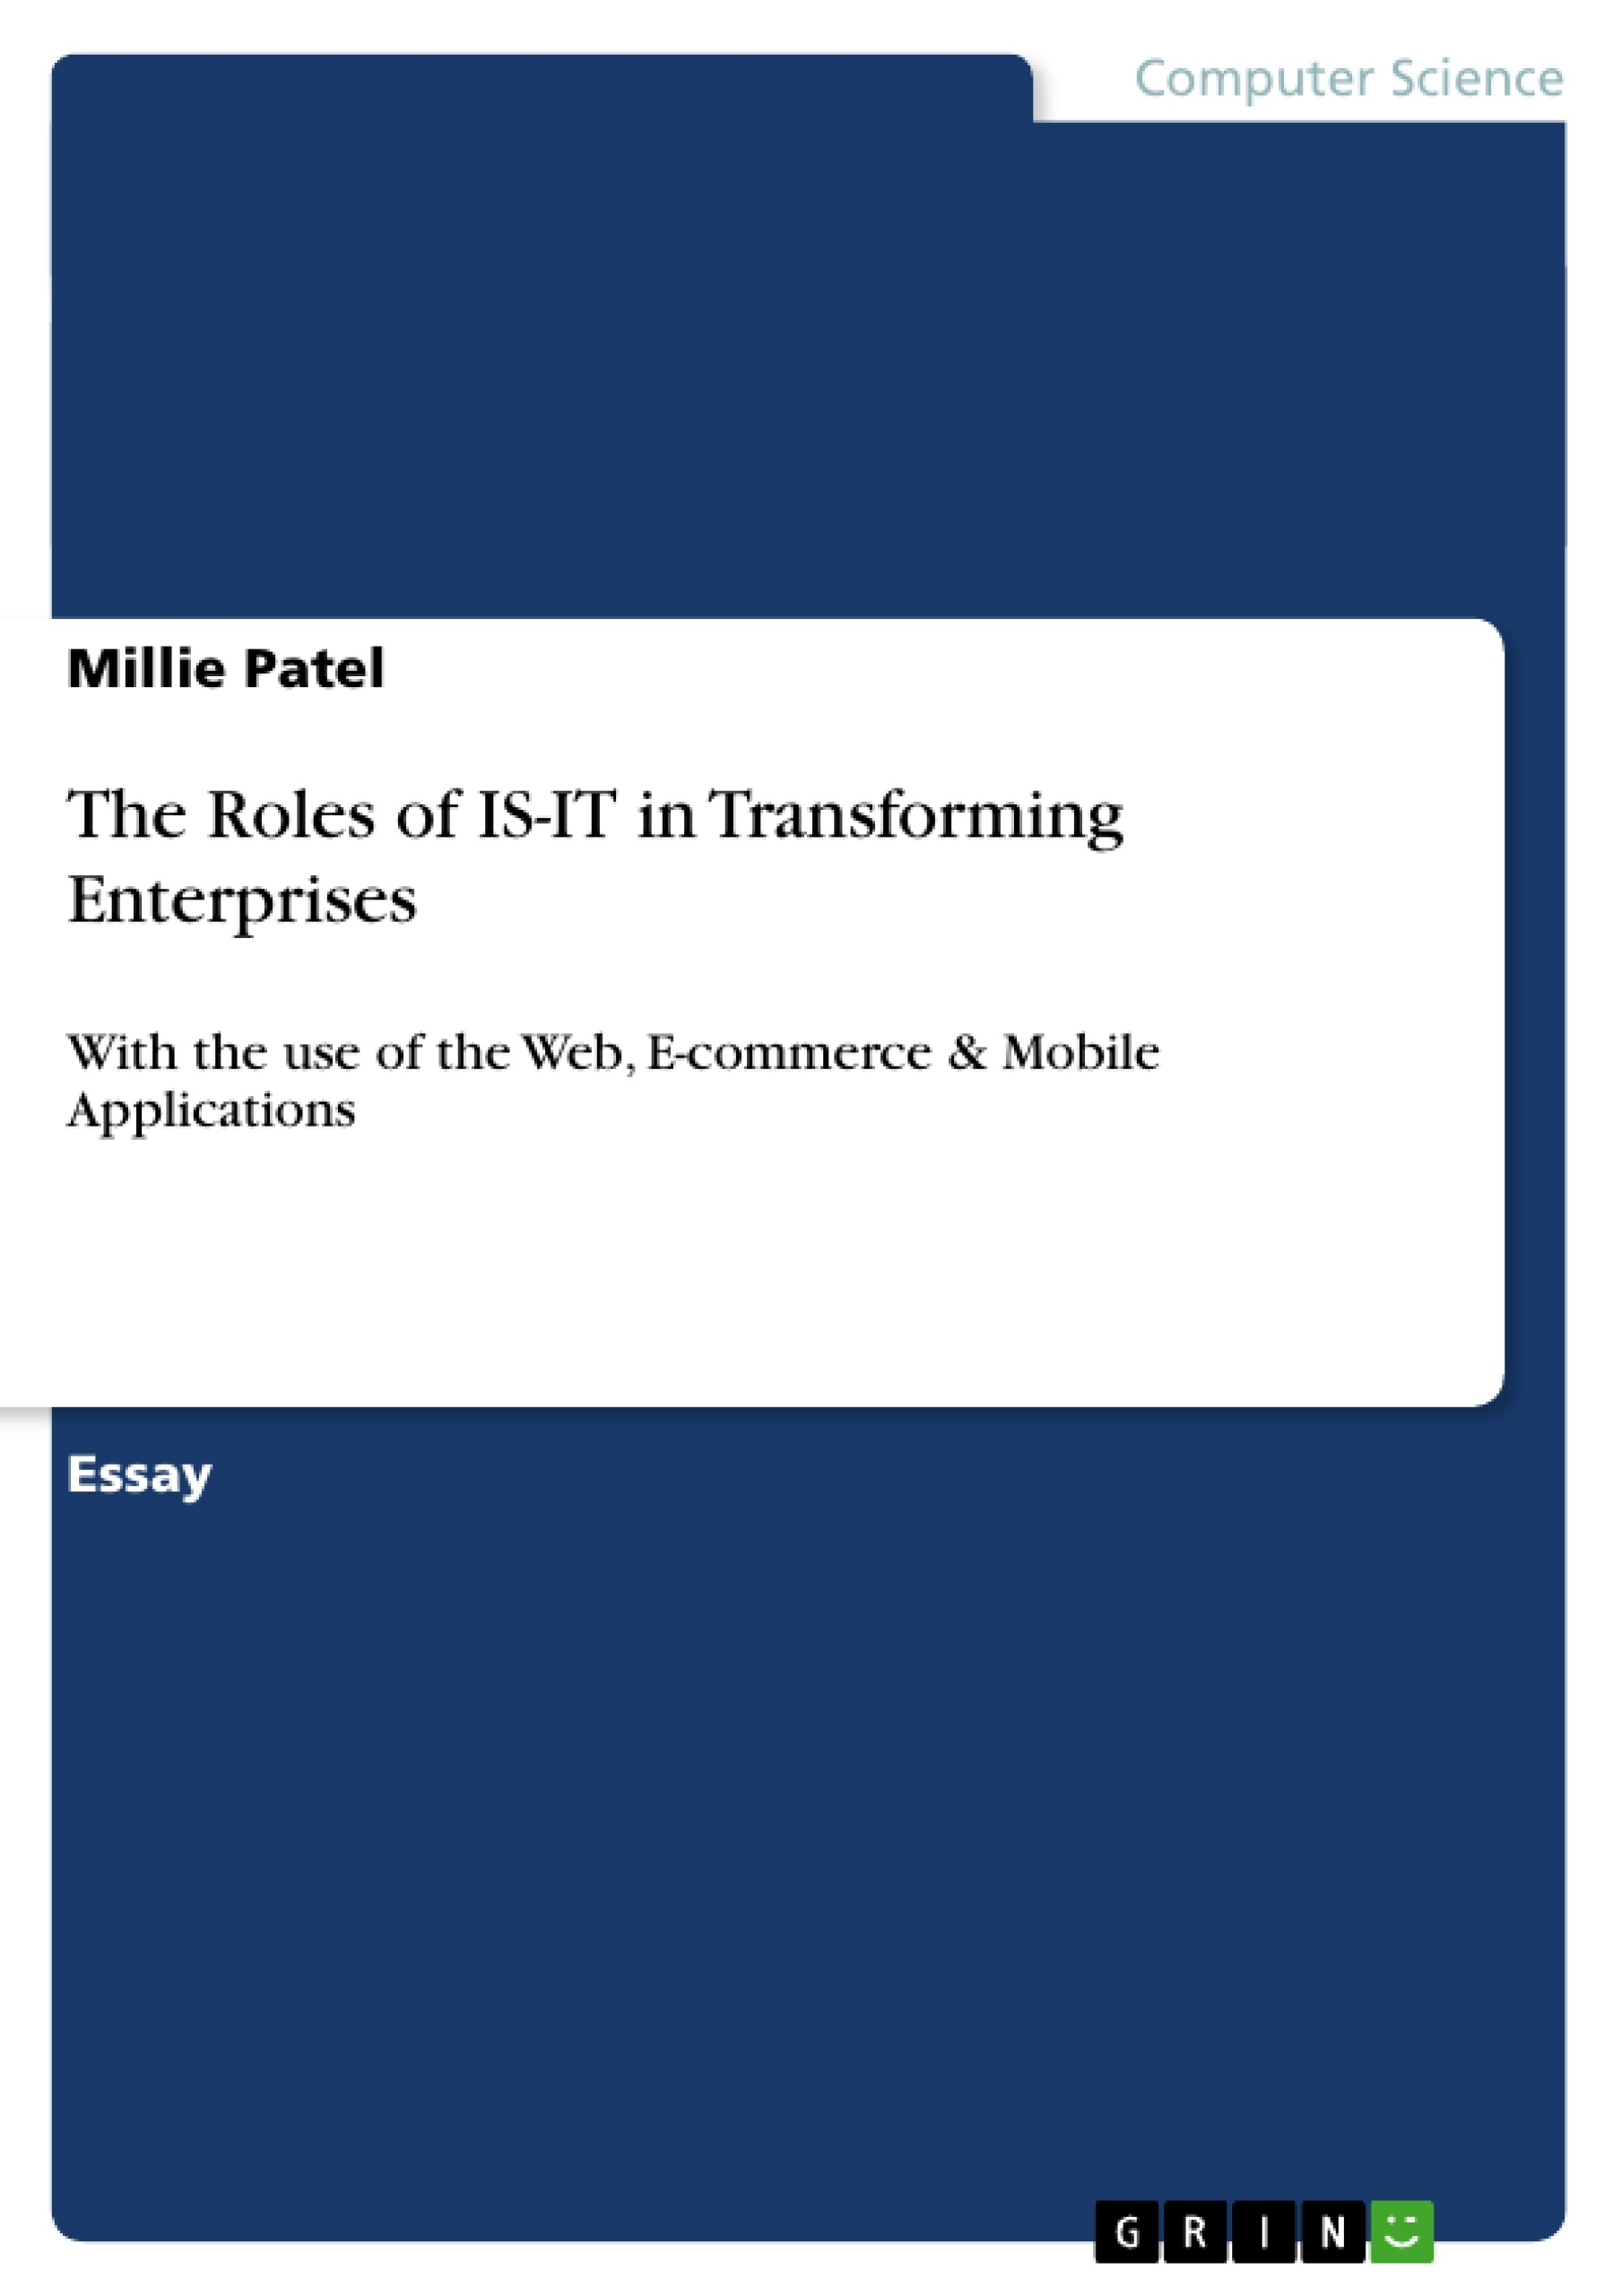 Title: The Roles of IS-IT in Transforming Enterprises